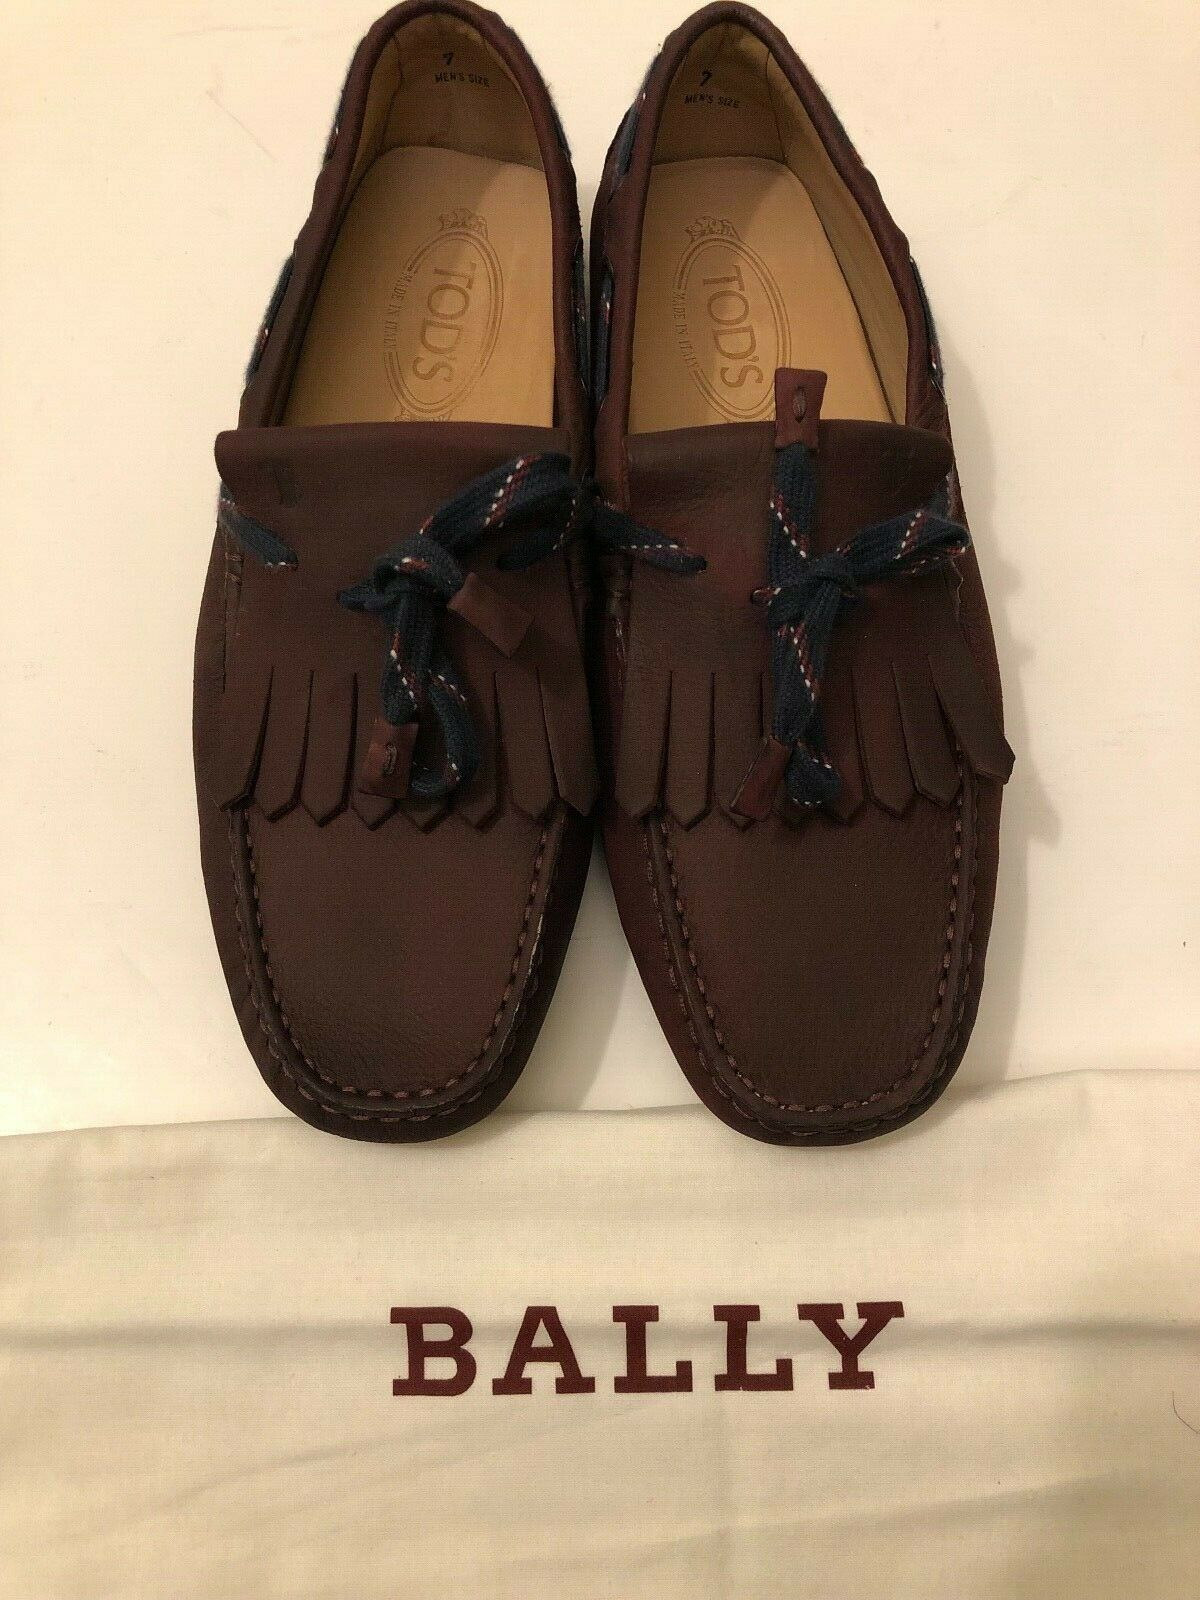 New Men  450 Tod's Hogan Maroon Driver loafers leather scarpe 7 w  Bally bag Saks